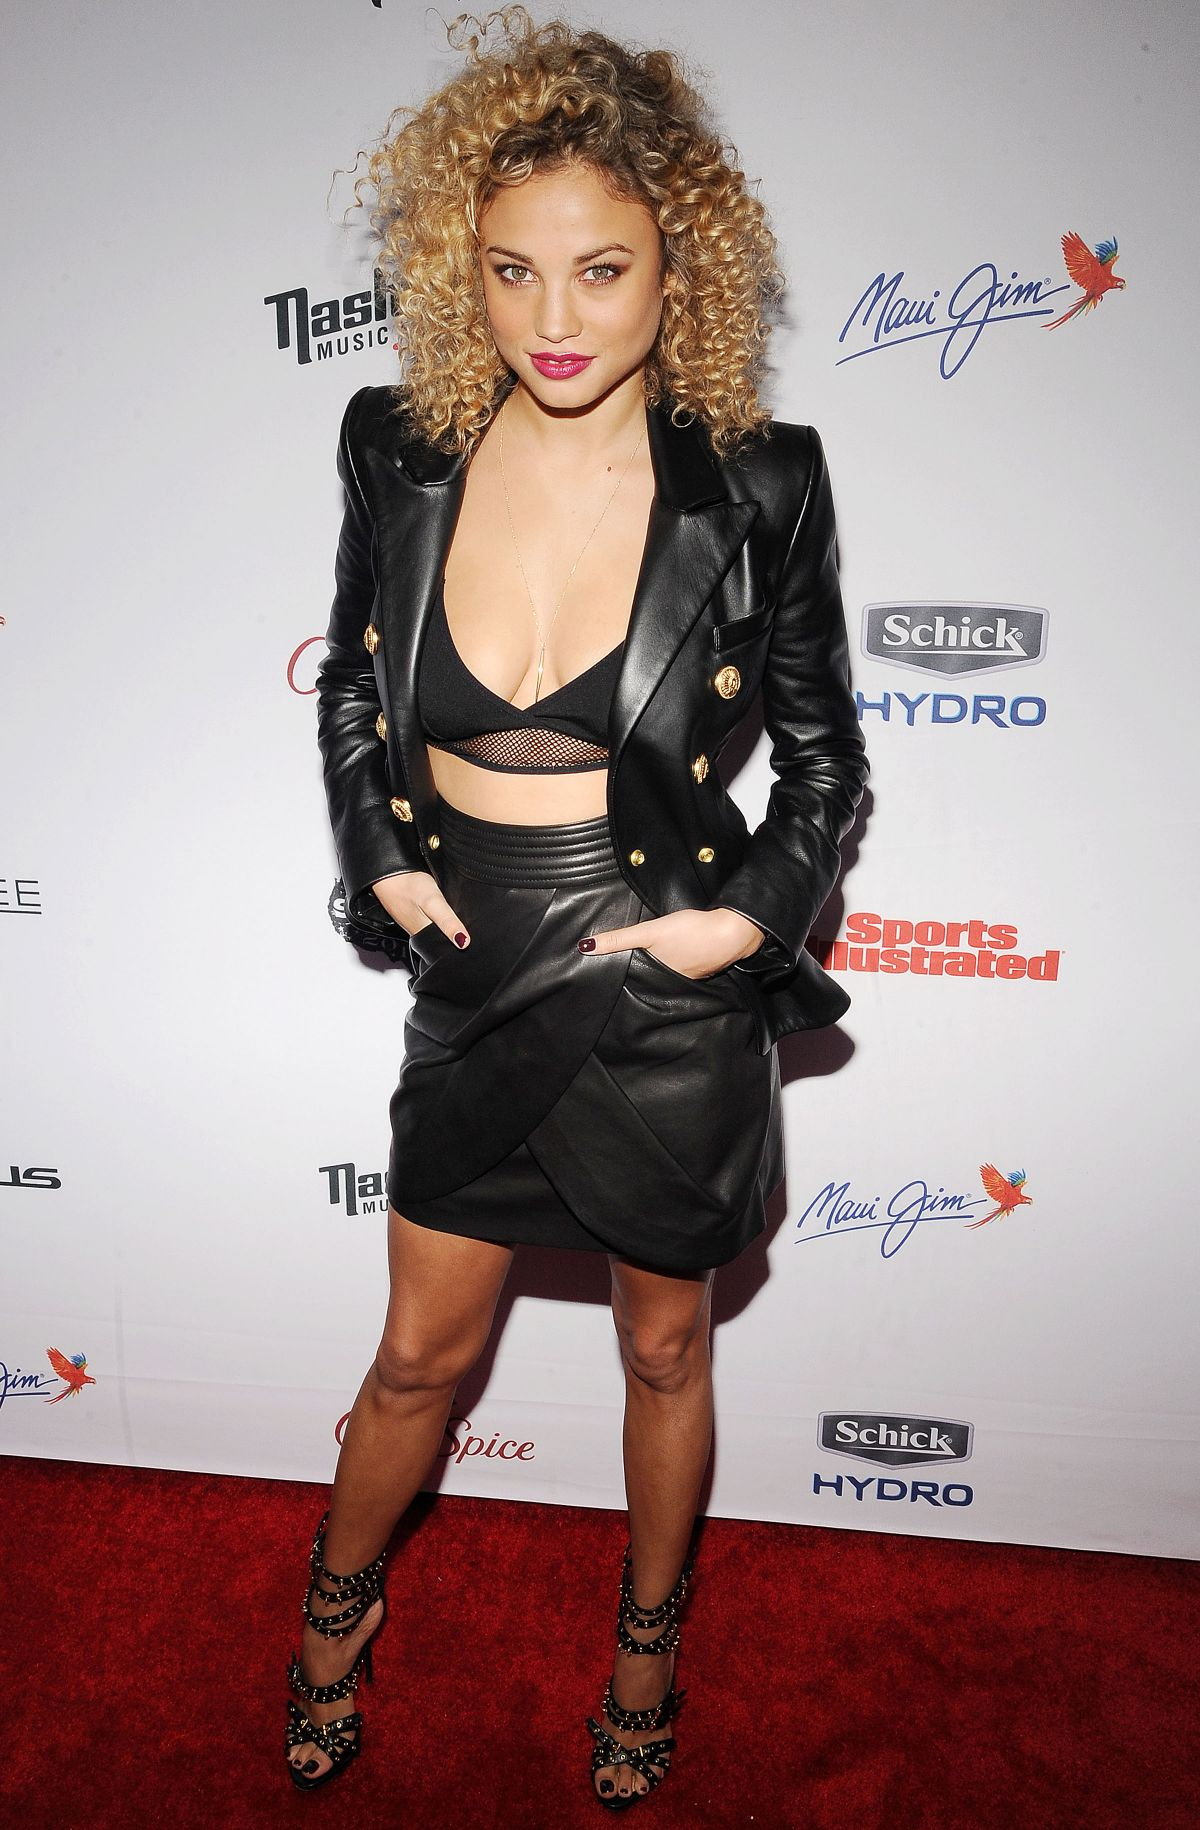 Paparazzi Rose Bertram naked (35 foto and video), Pussy, Is a cute, Feet, legs 2020